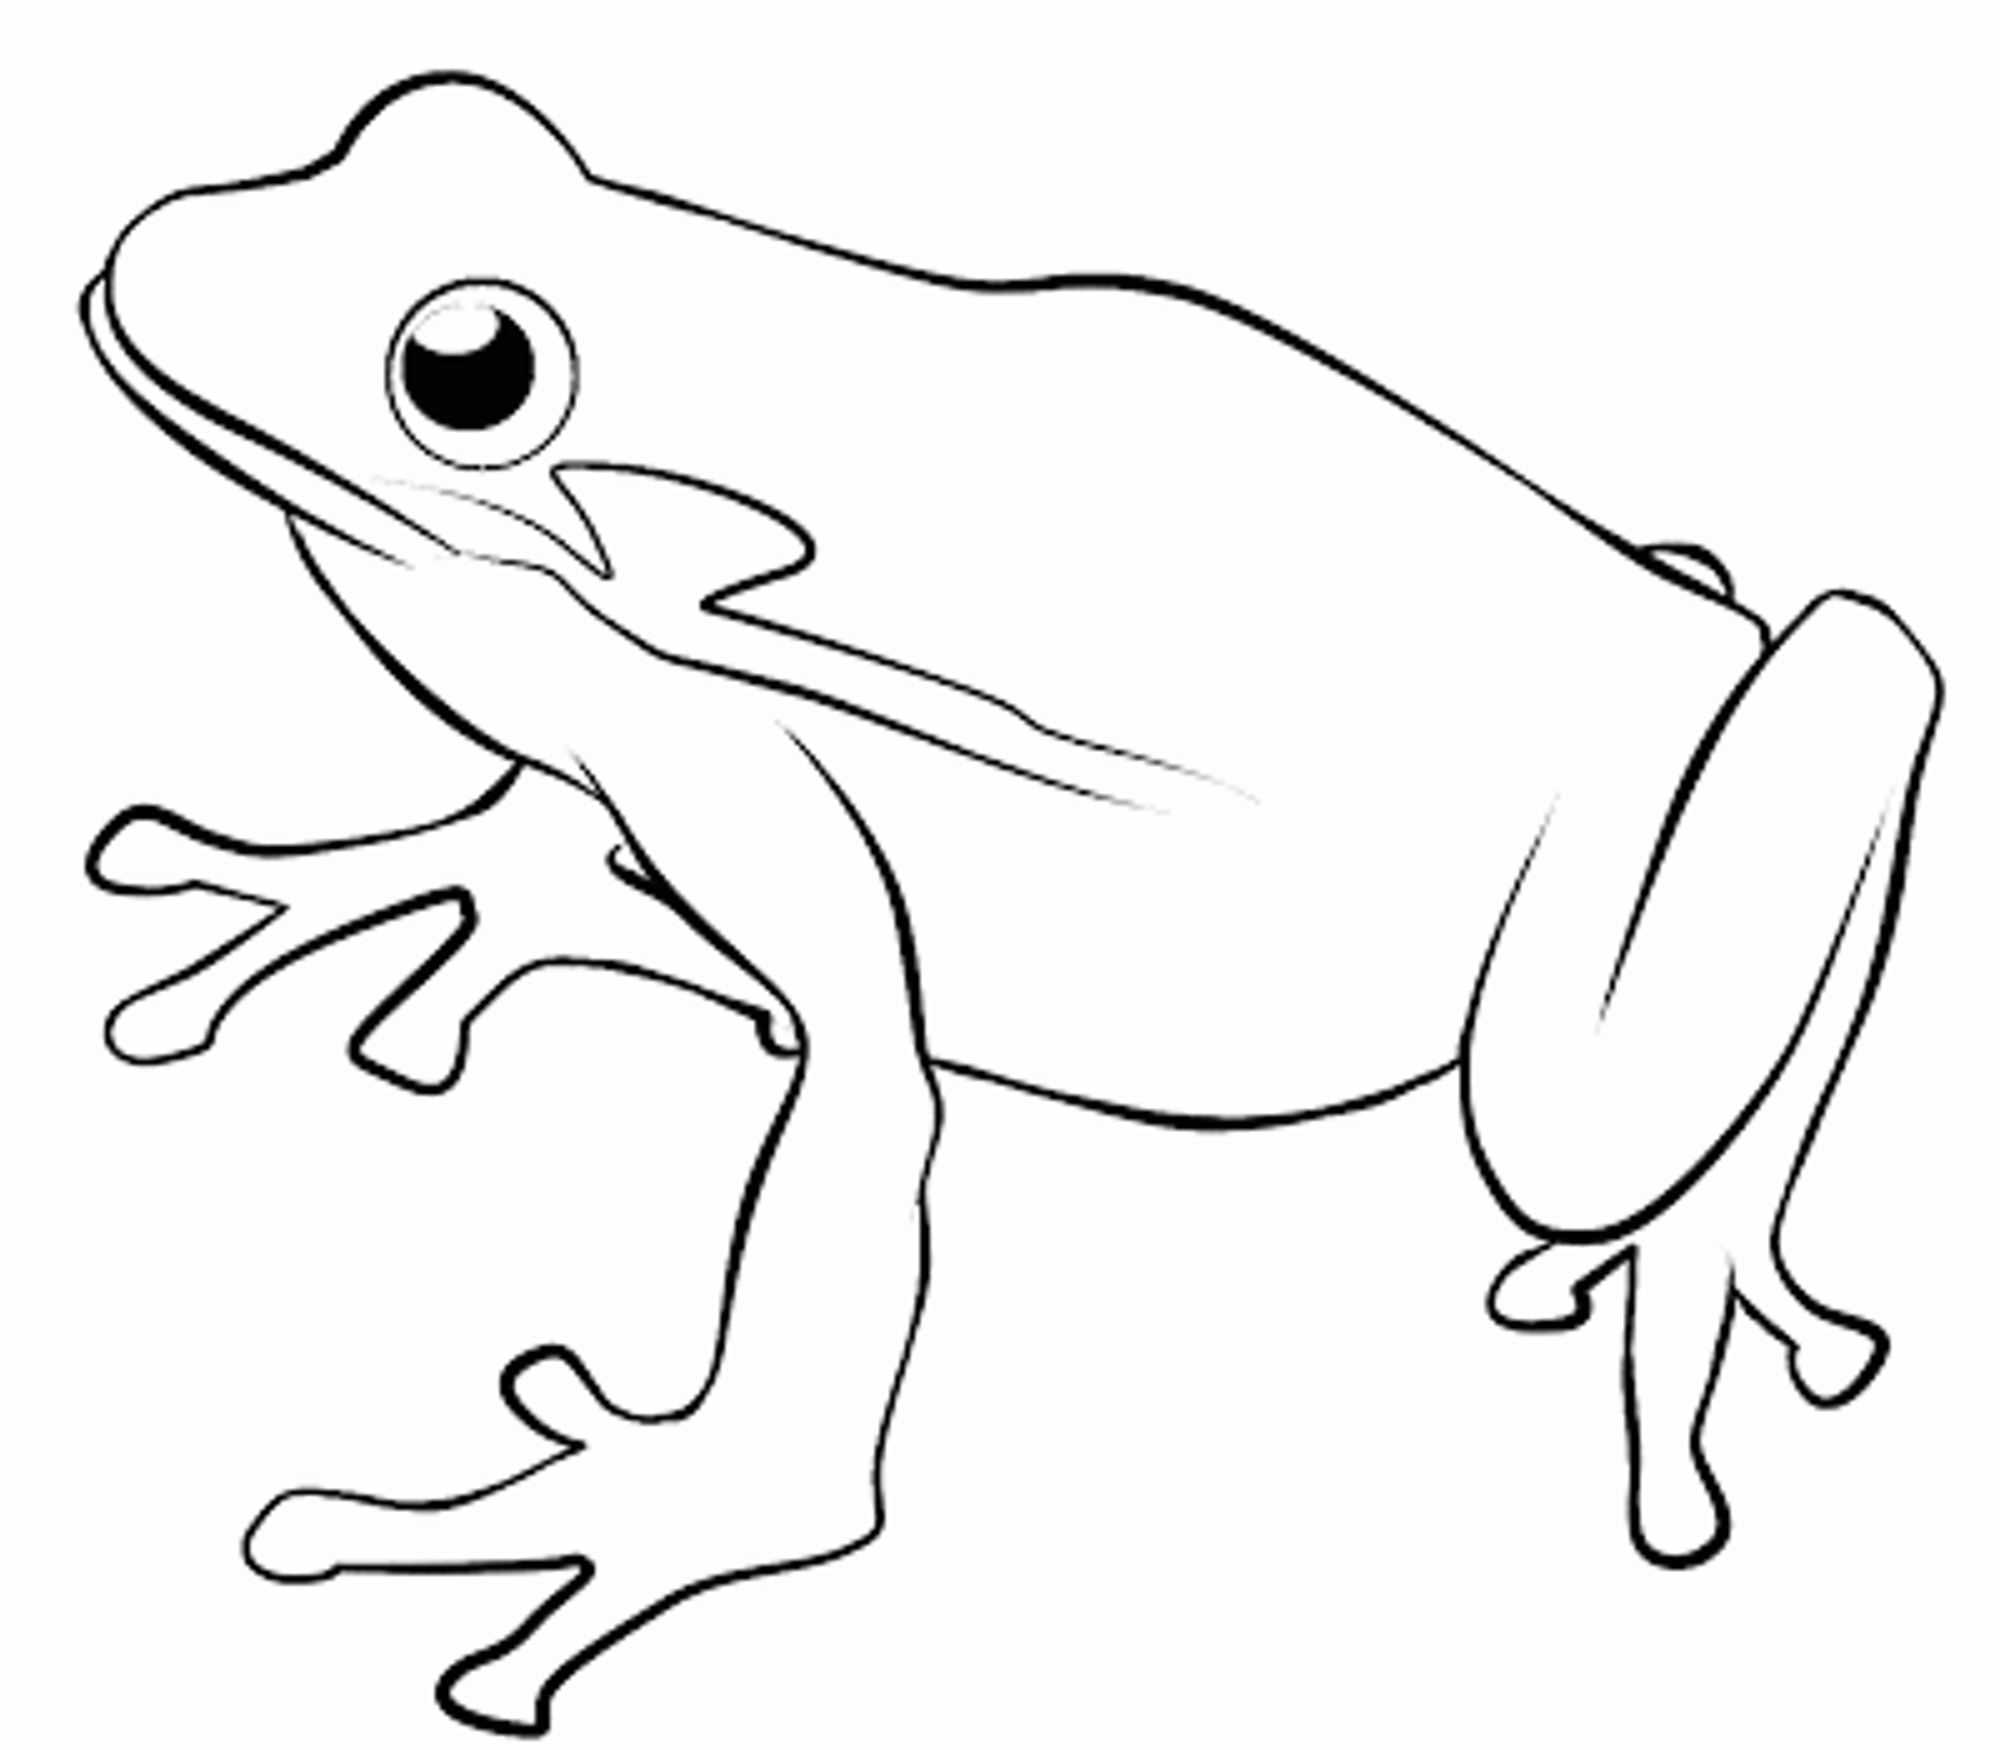 frog coloring book frog coloring pages getcoloringpagescom book coloring frog